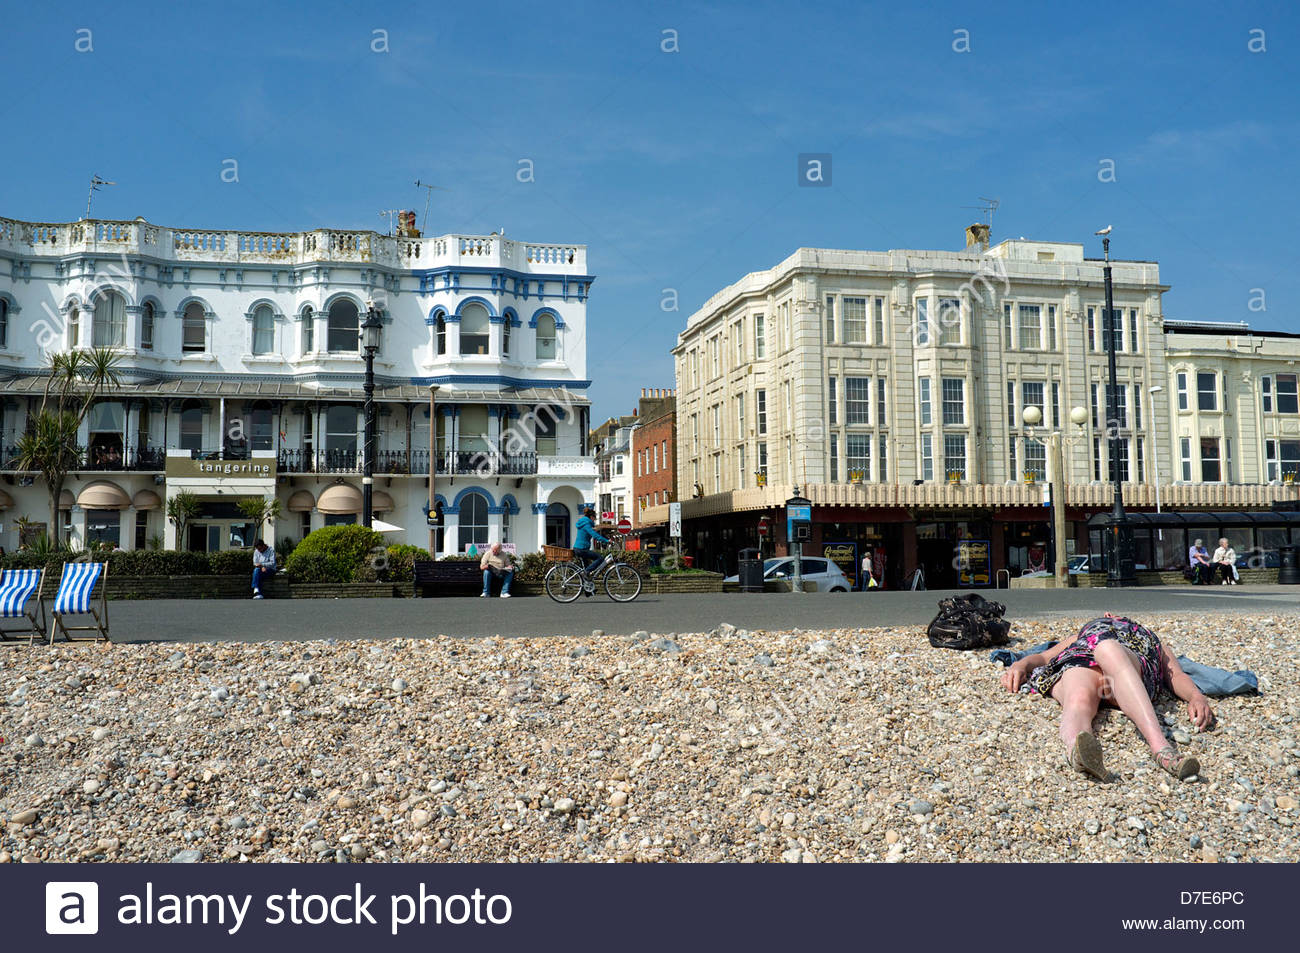 A sunbather lies on the beach on Worthing seafront. West Sussex, UK. - Stock Image